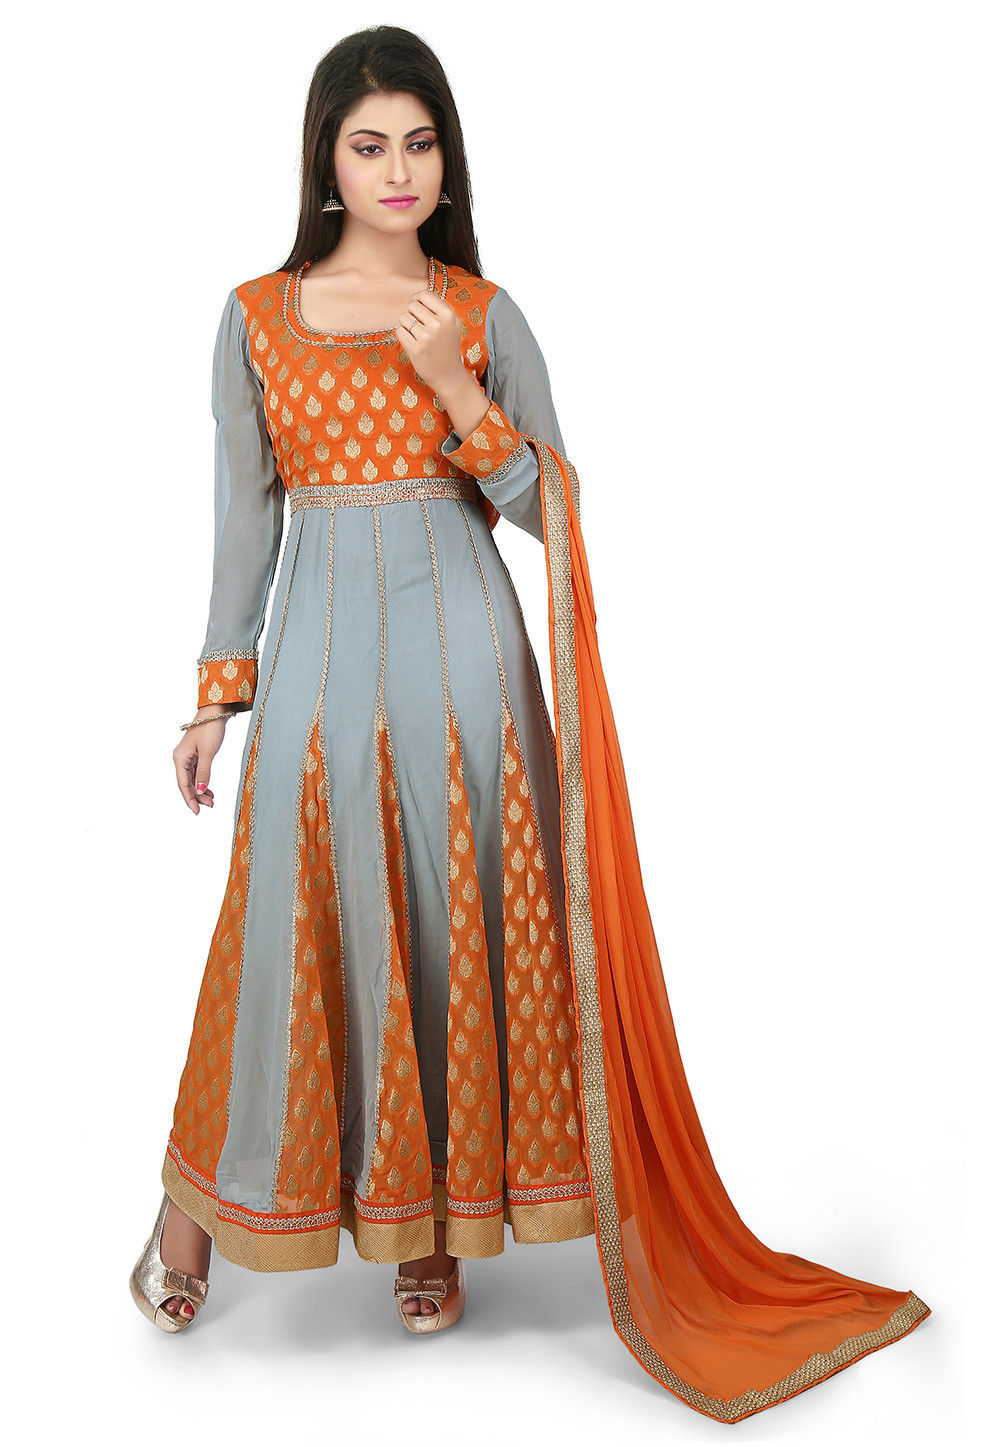 Woven georgette and Viscose Georgette Jacquard Anarkali Suit in Grey and orange